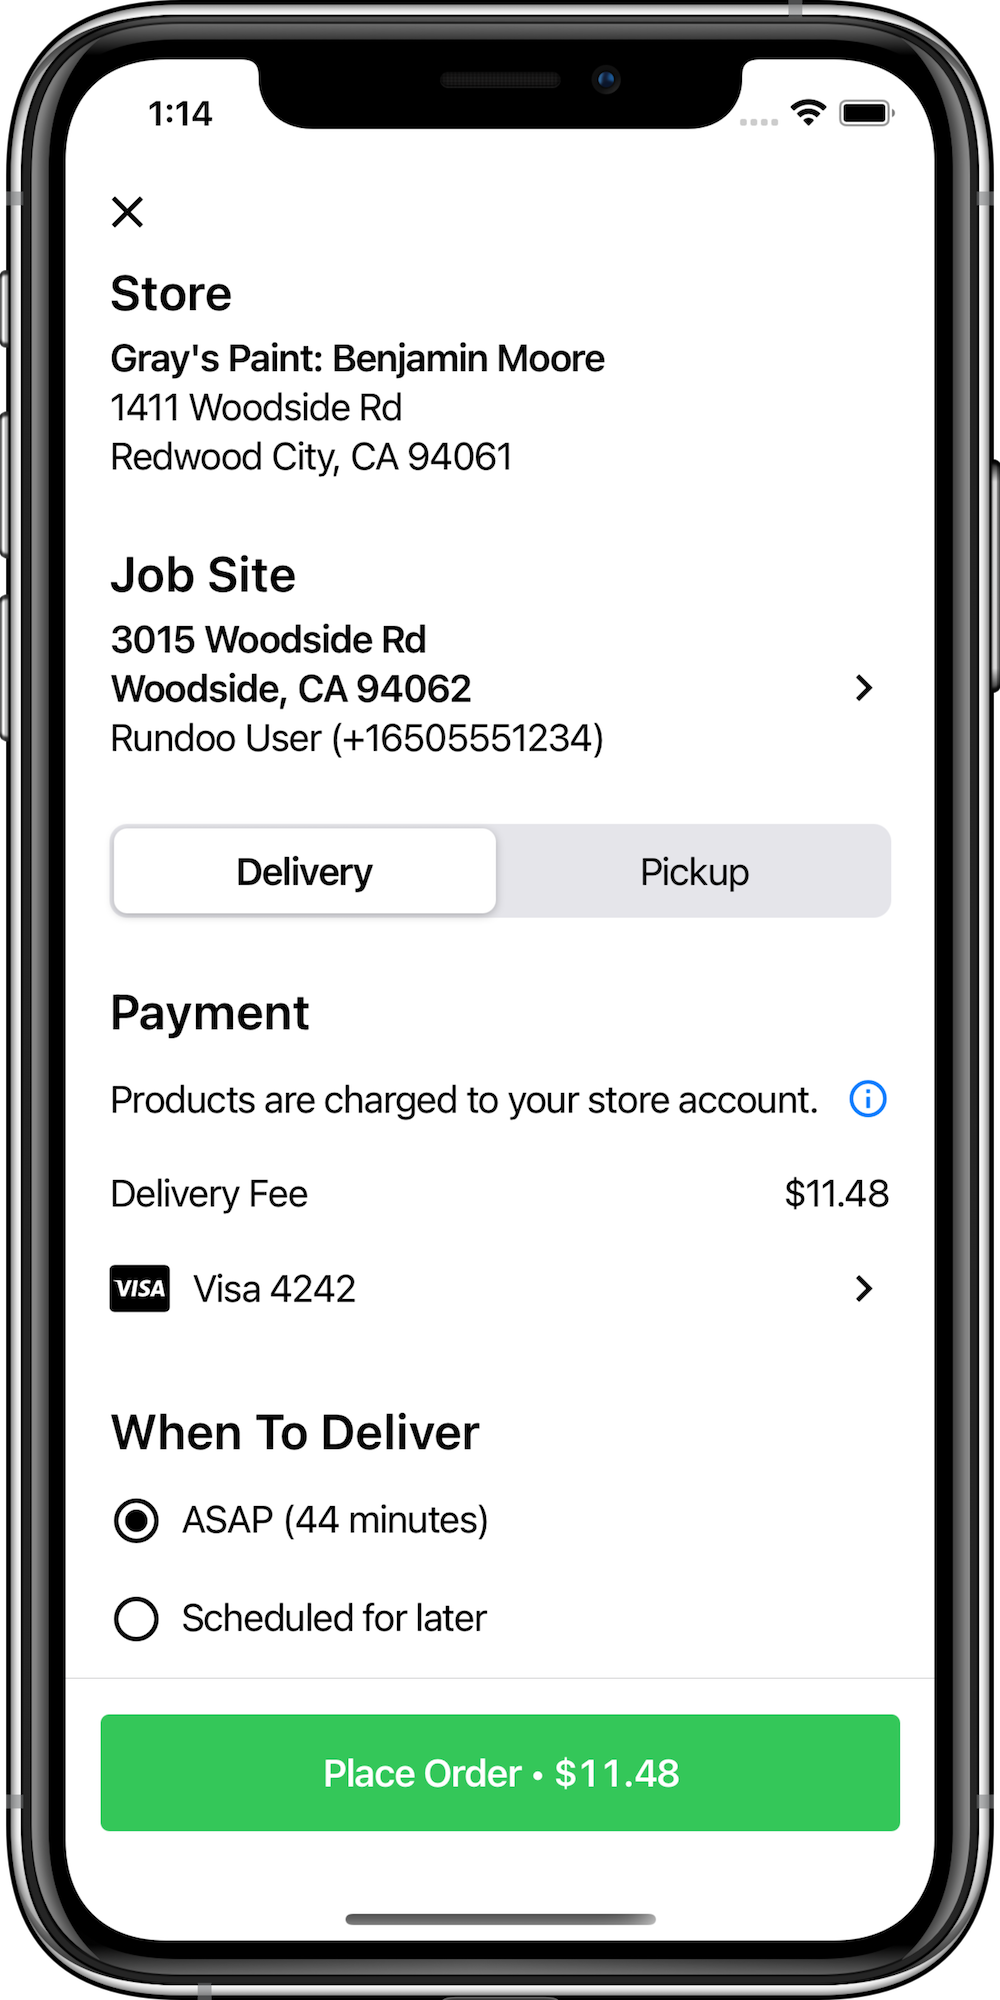 App screen showing form for reviewing and submitting order, including a choice for delivery or pickup